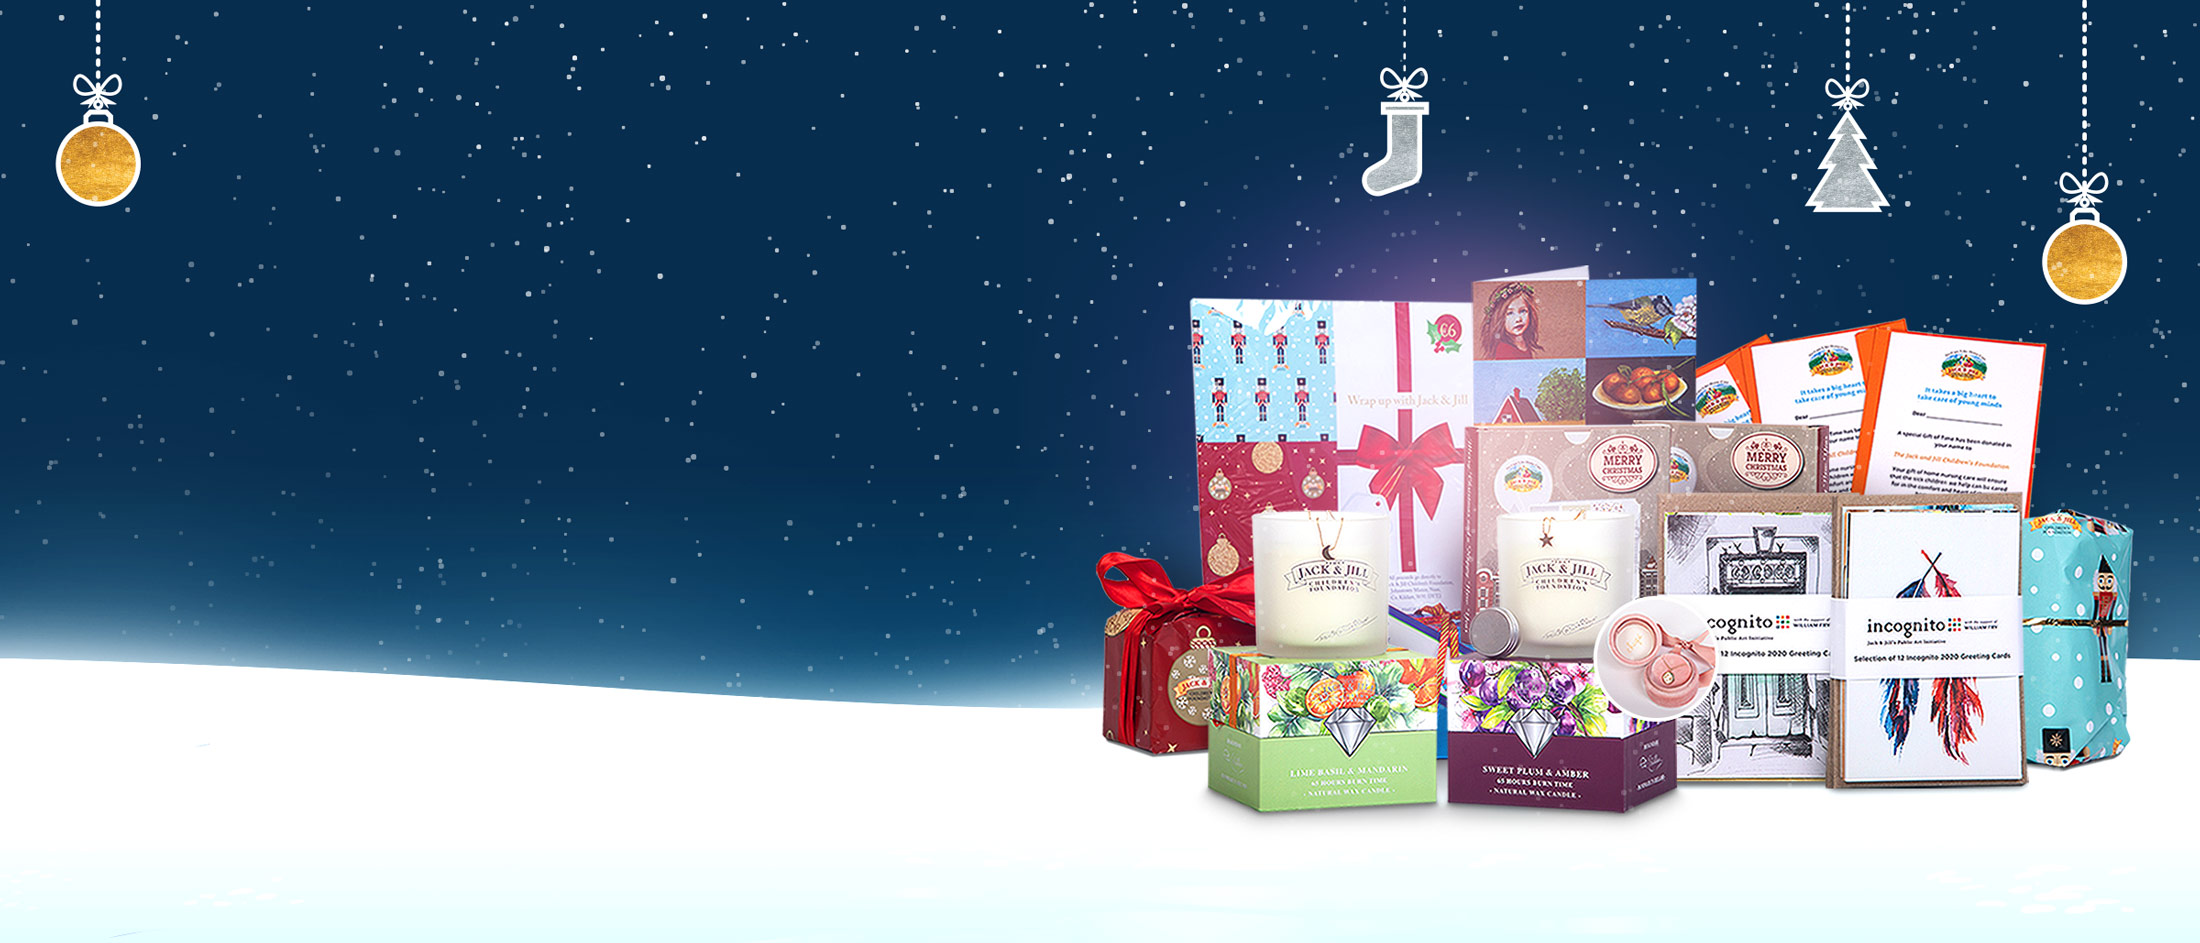 Choose a Jack & Jill gift this Christmas and help keep our children at home